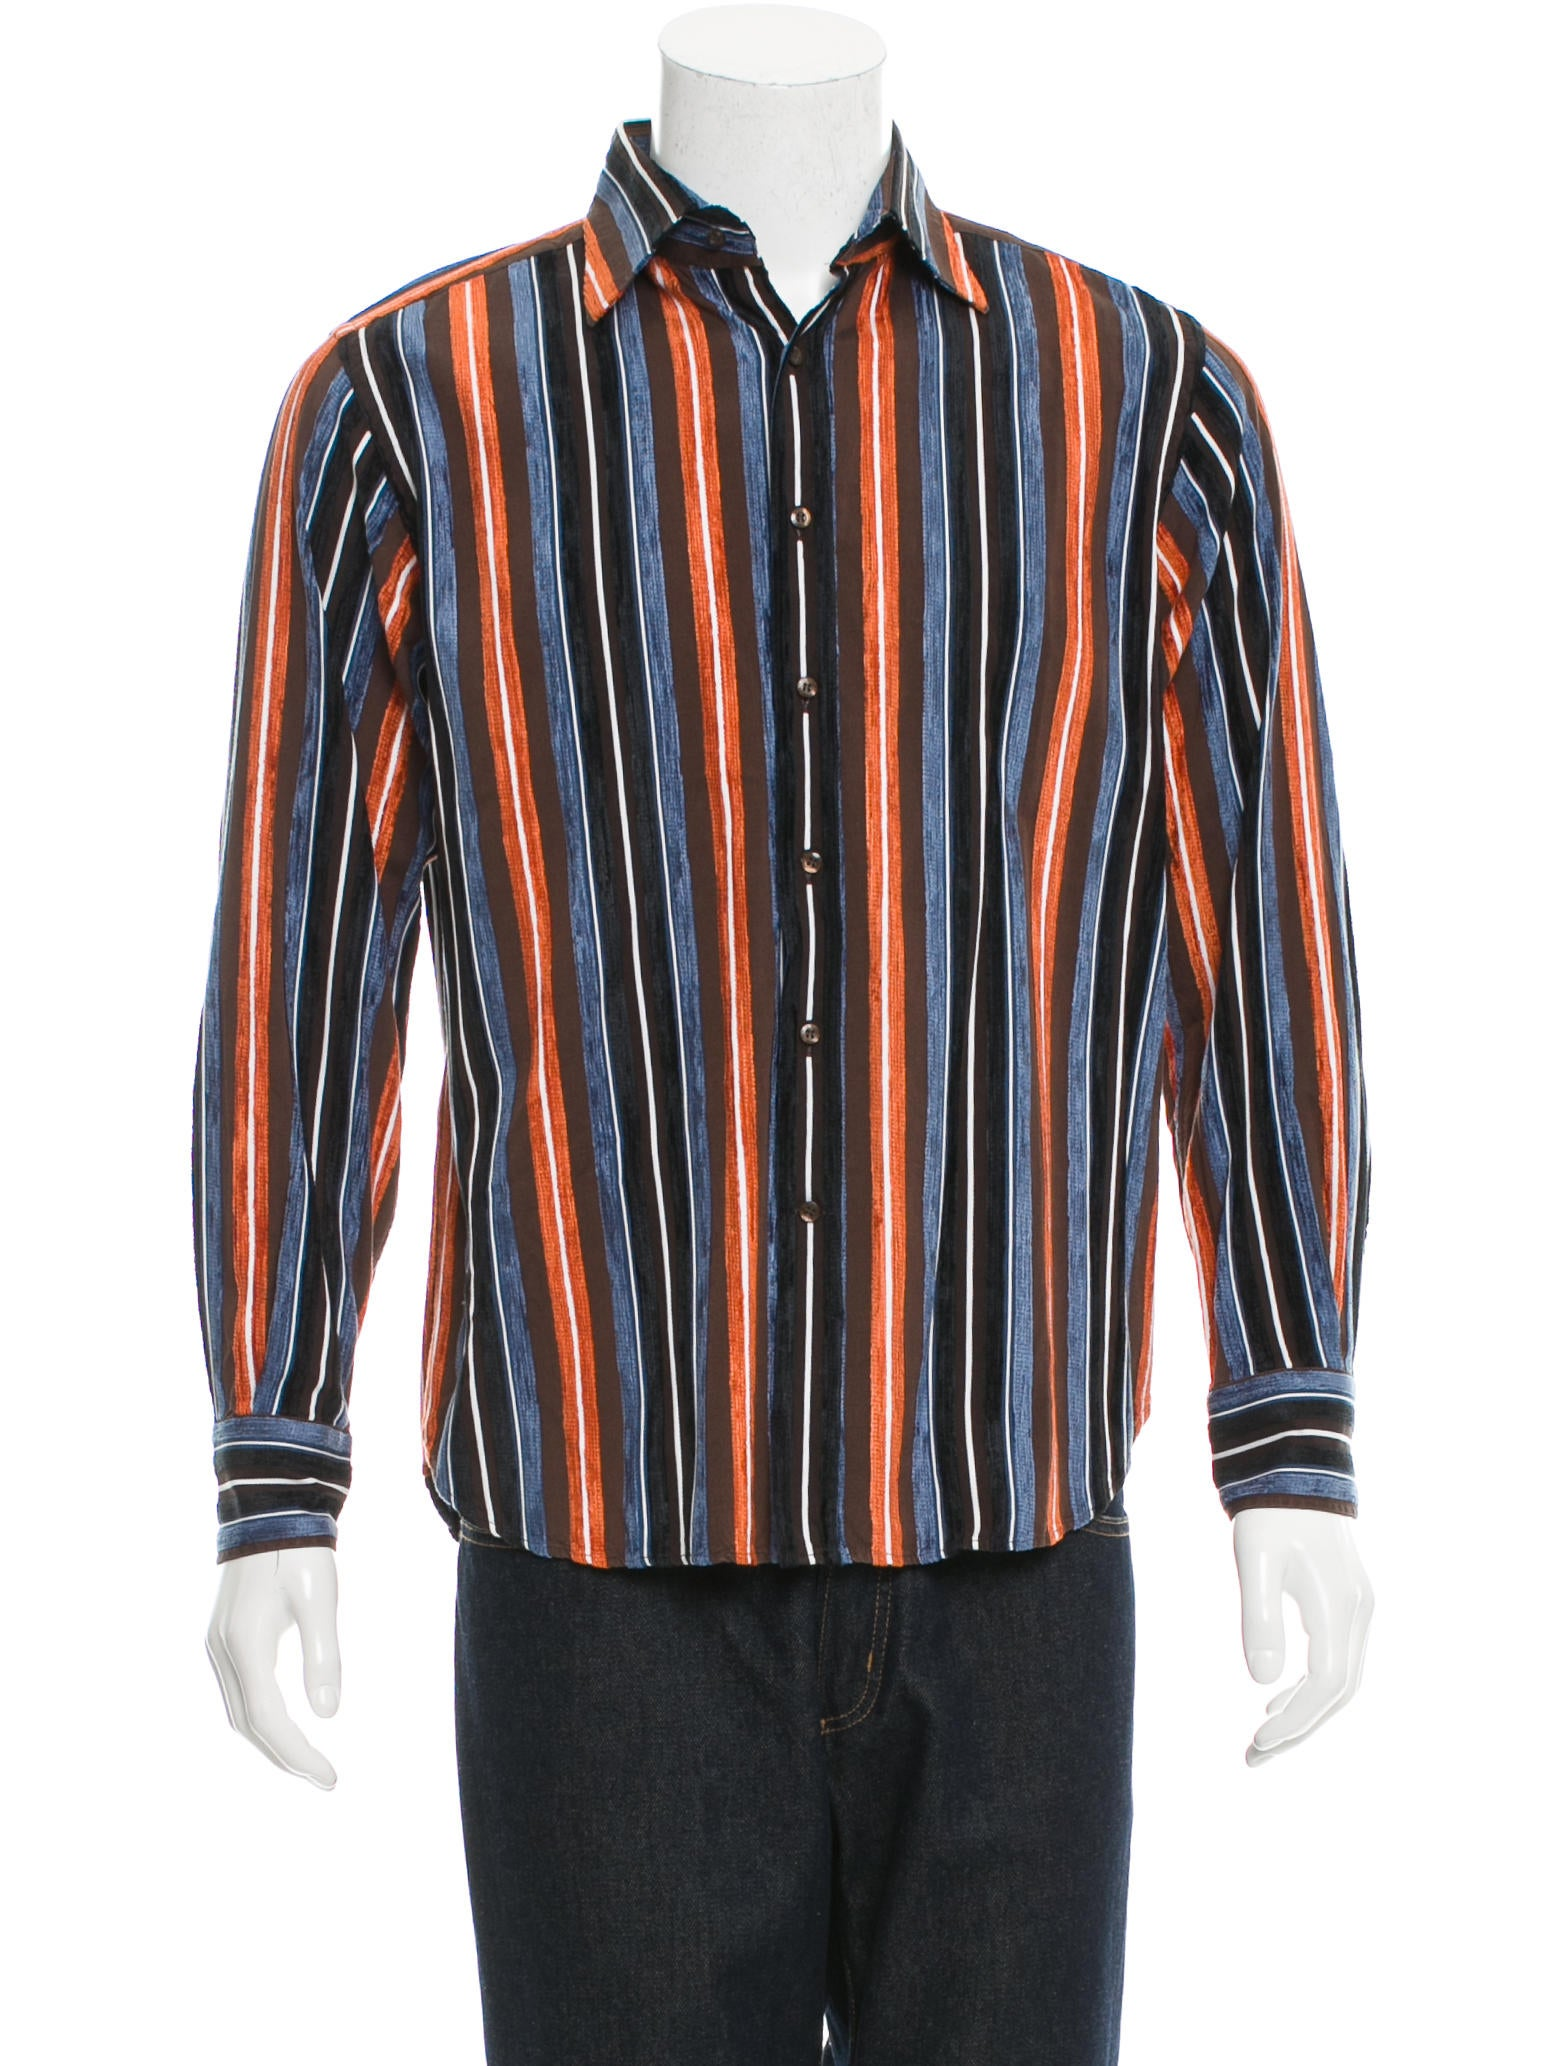 Etro striped button up shirt clothing etr45133 the for Striped button up shirt mens